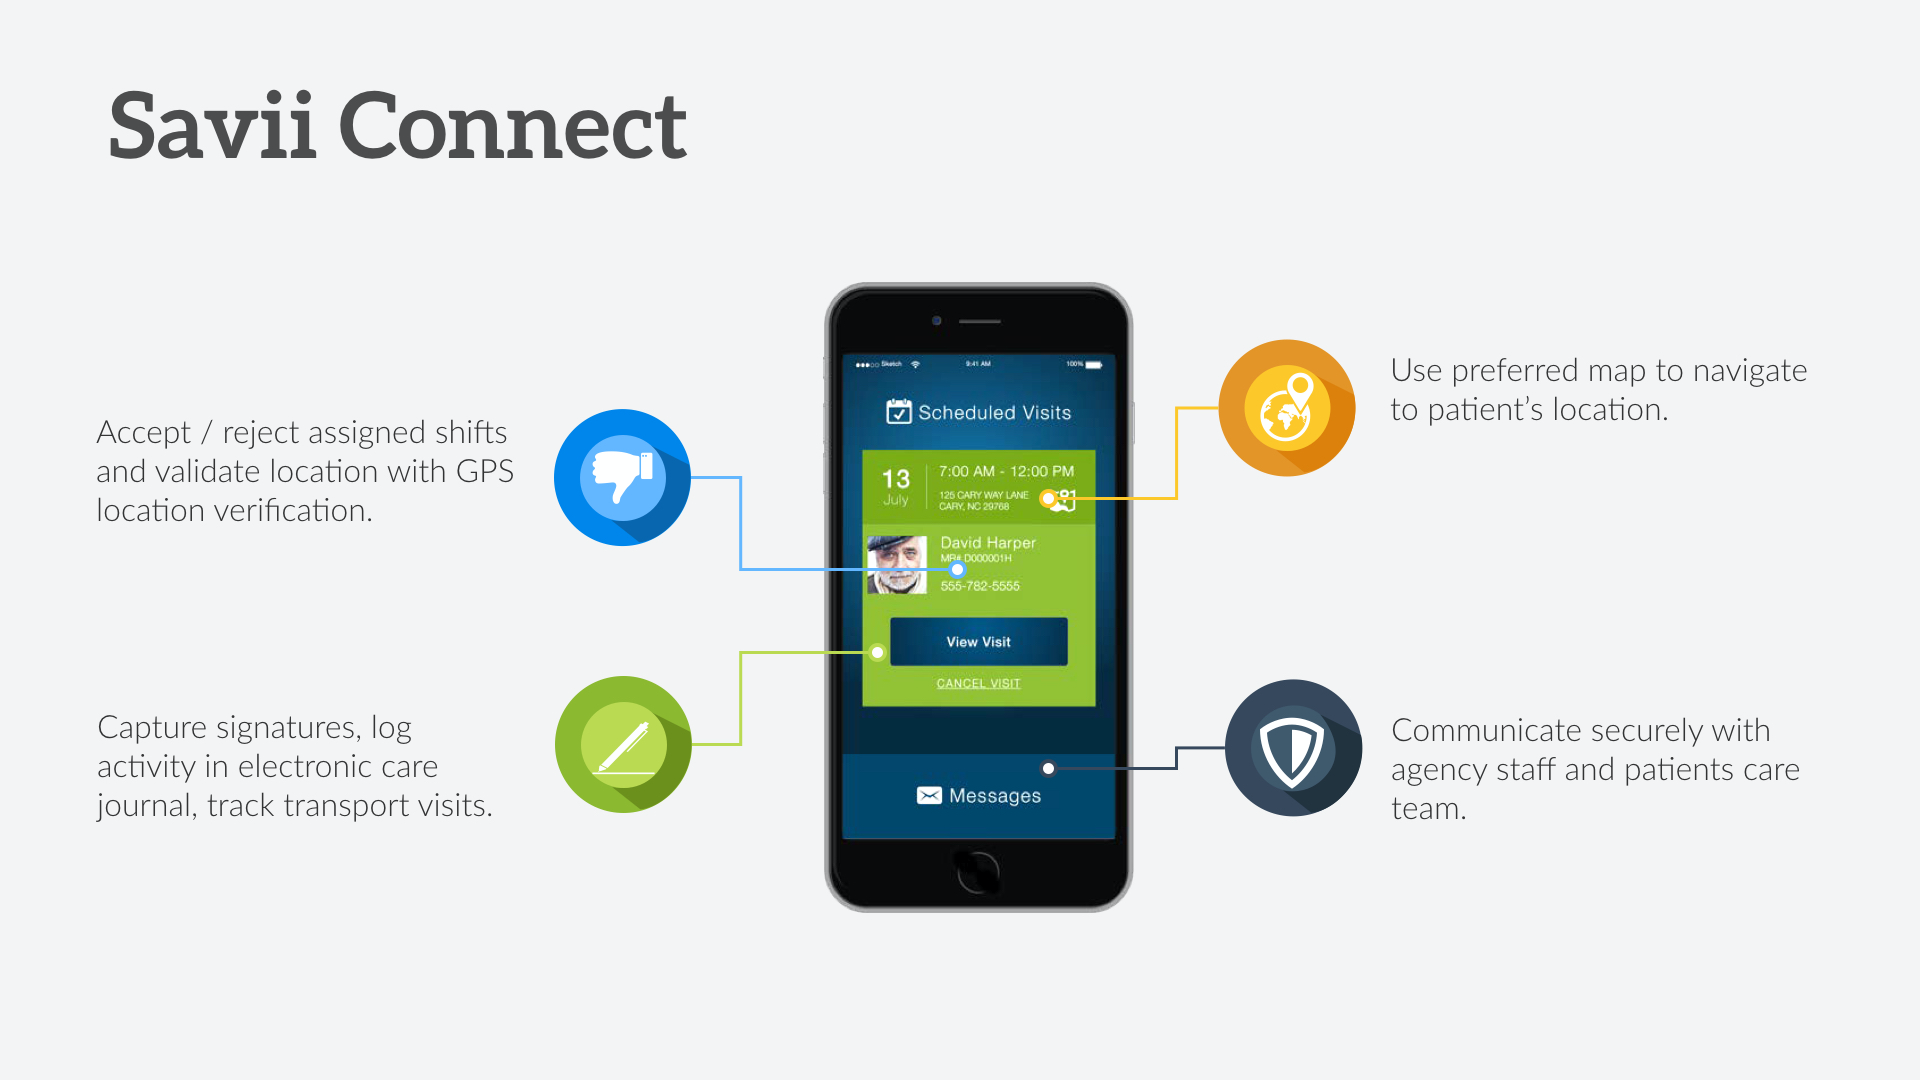 Savii Connect Product Overview